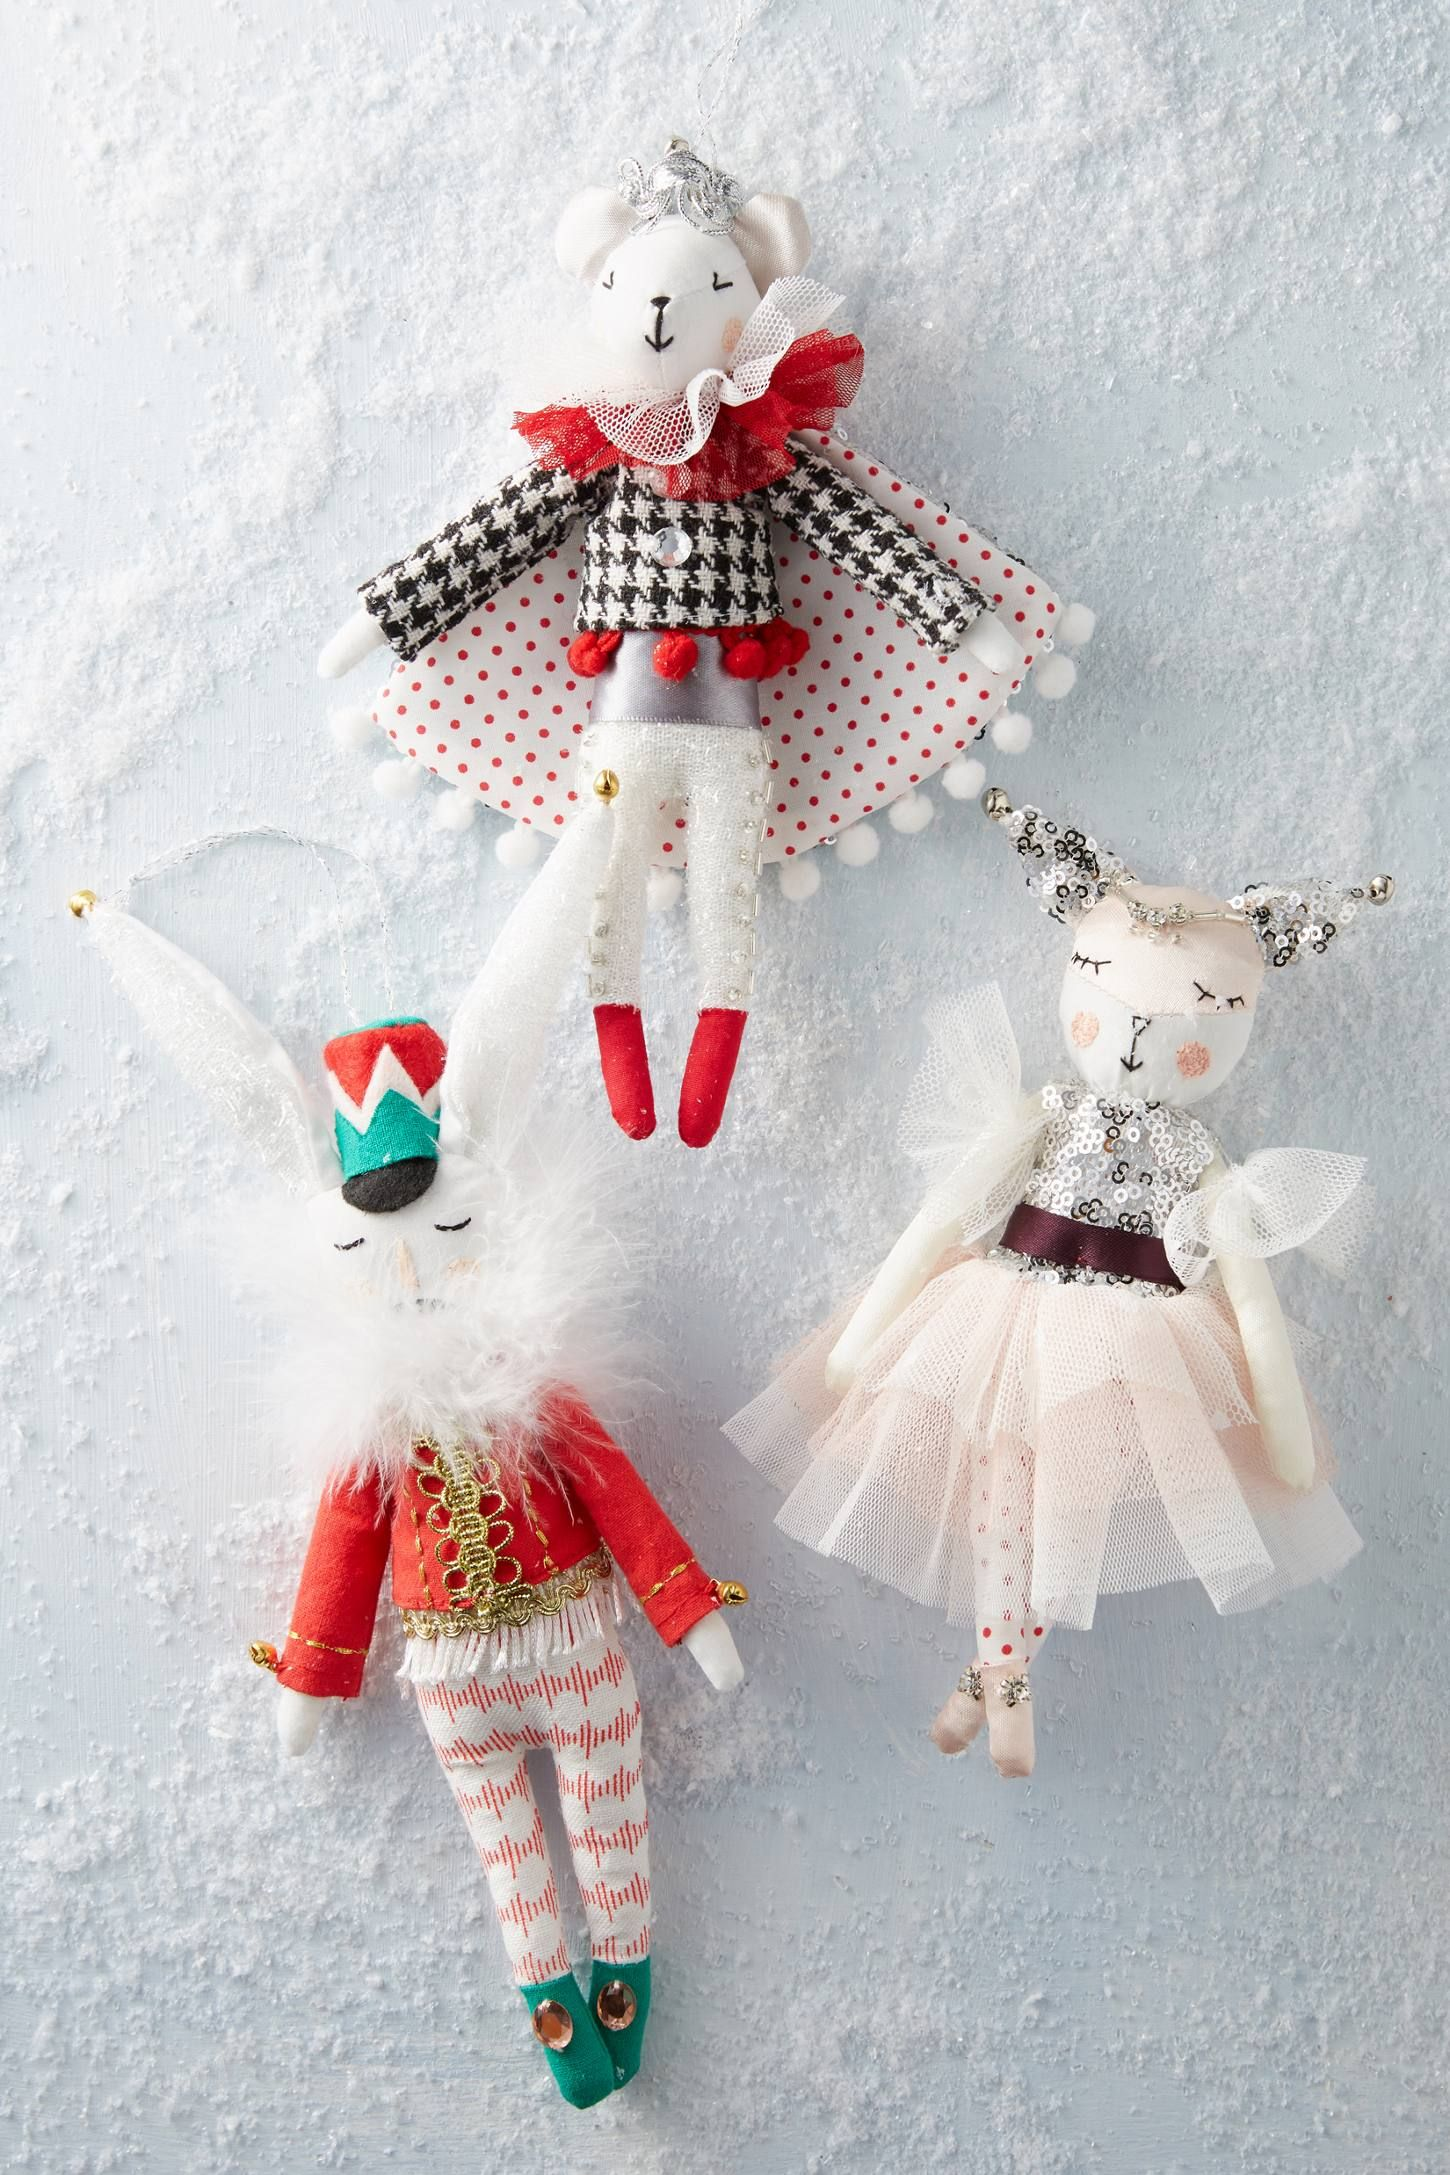 Shop The Nutcracker Character Ornament And More Anthropologie At Anthropologie